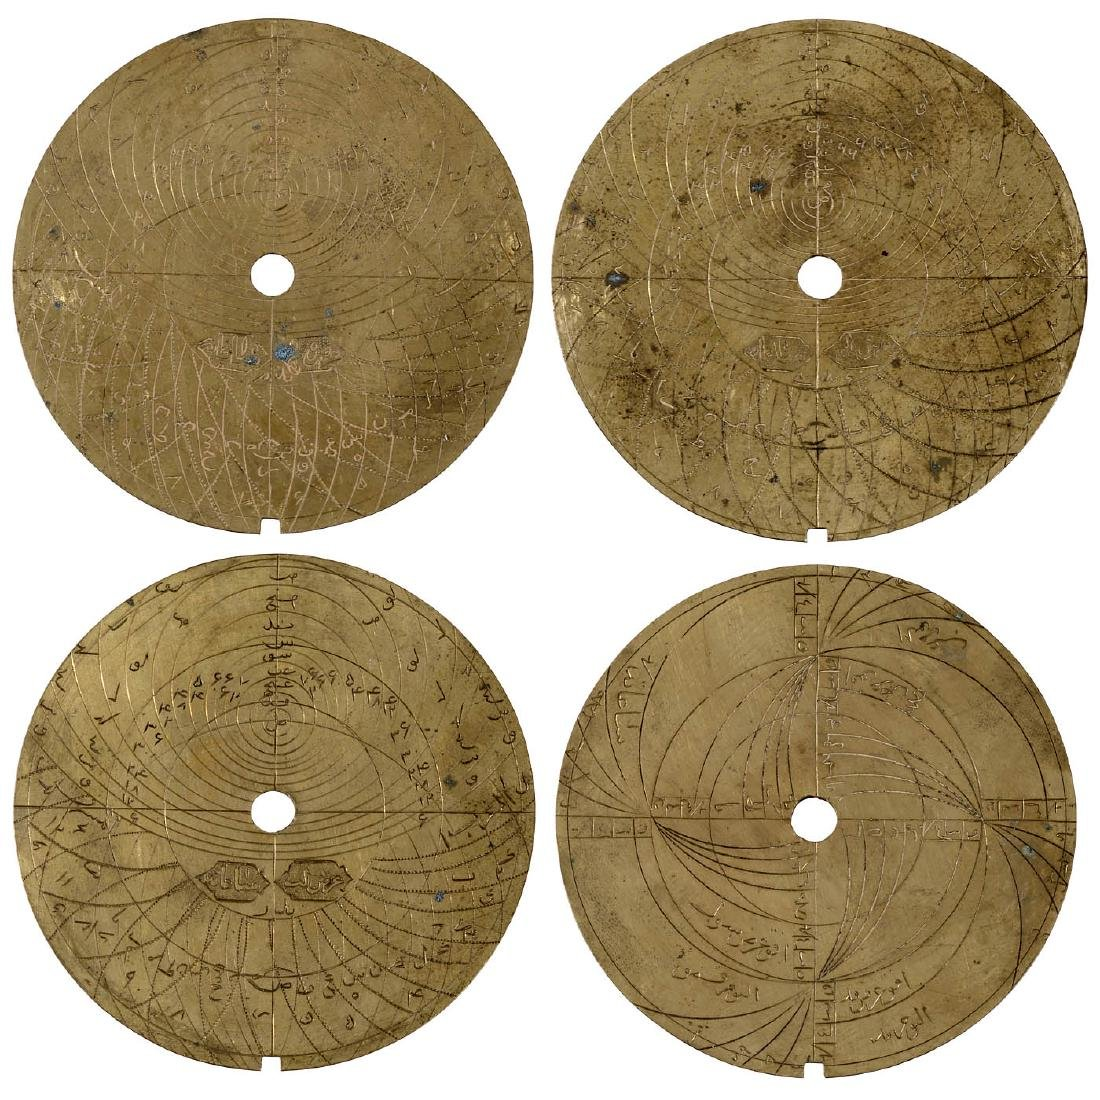 Rare Islamic Astrolabe, probably late 18th/early 19th - 5